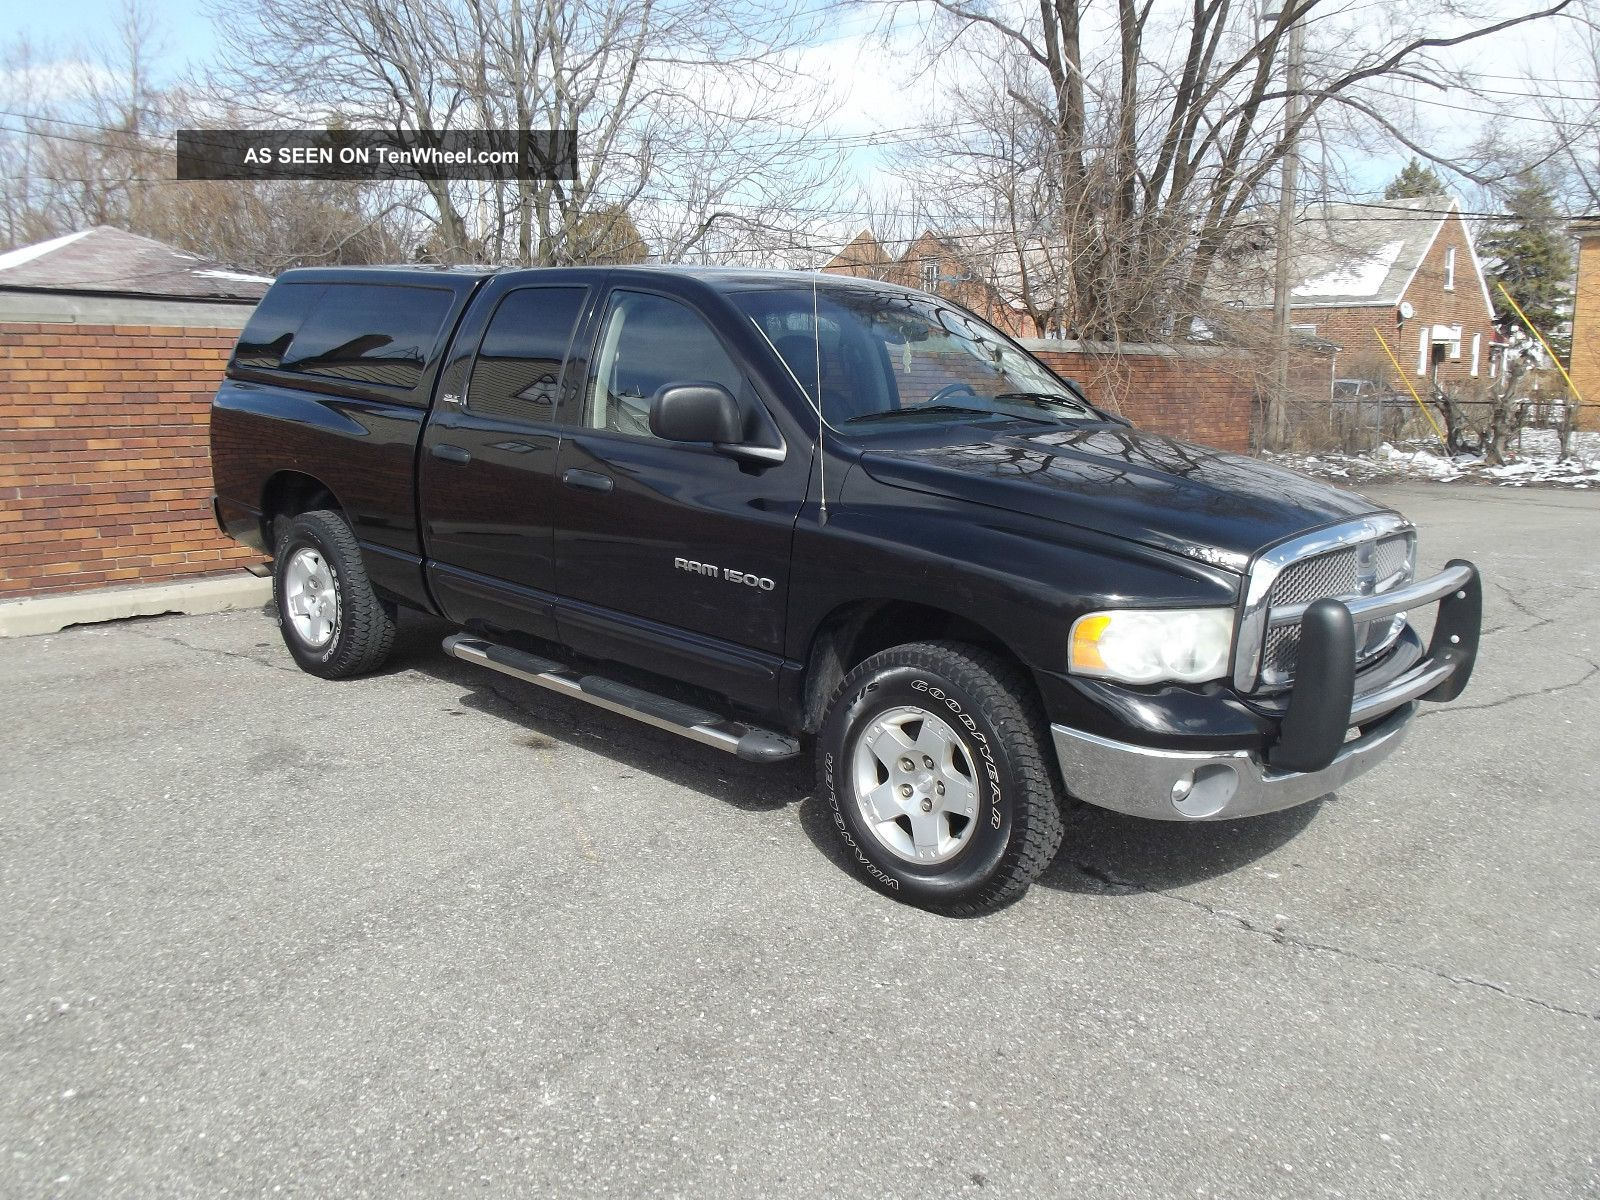 2002 dodge ram 1500 slt crew cab 4x4 5 9l v8. Black Bedroom Furniture Sets. Home Design Ideas